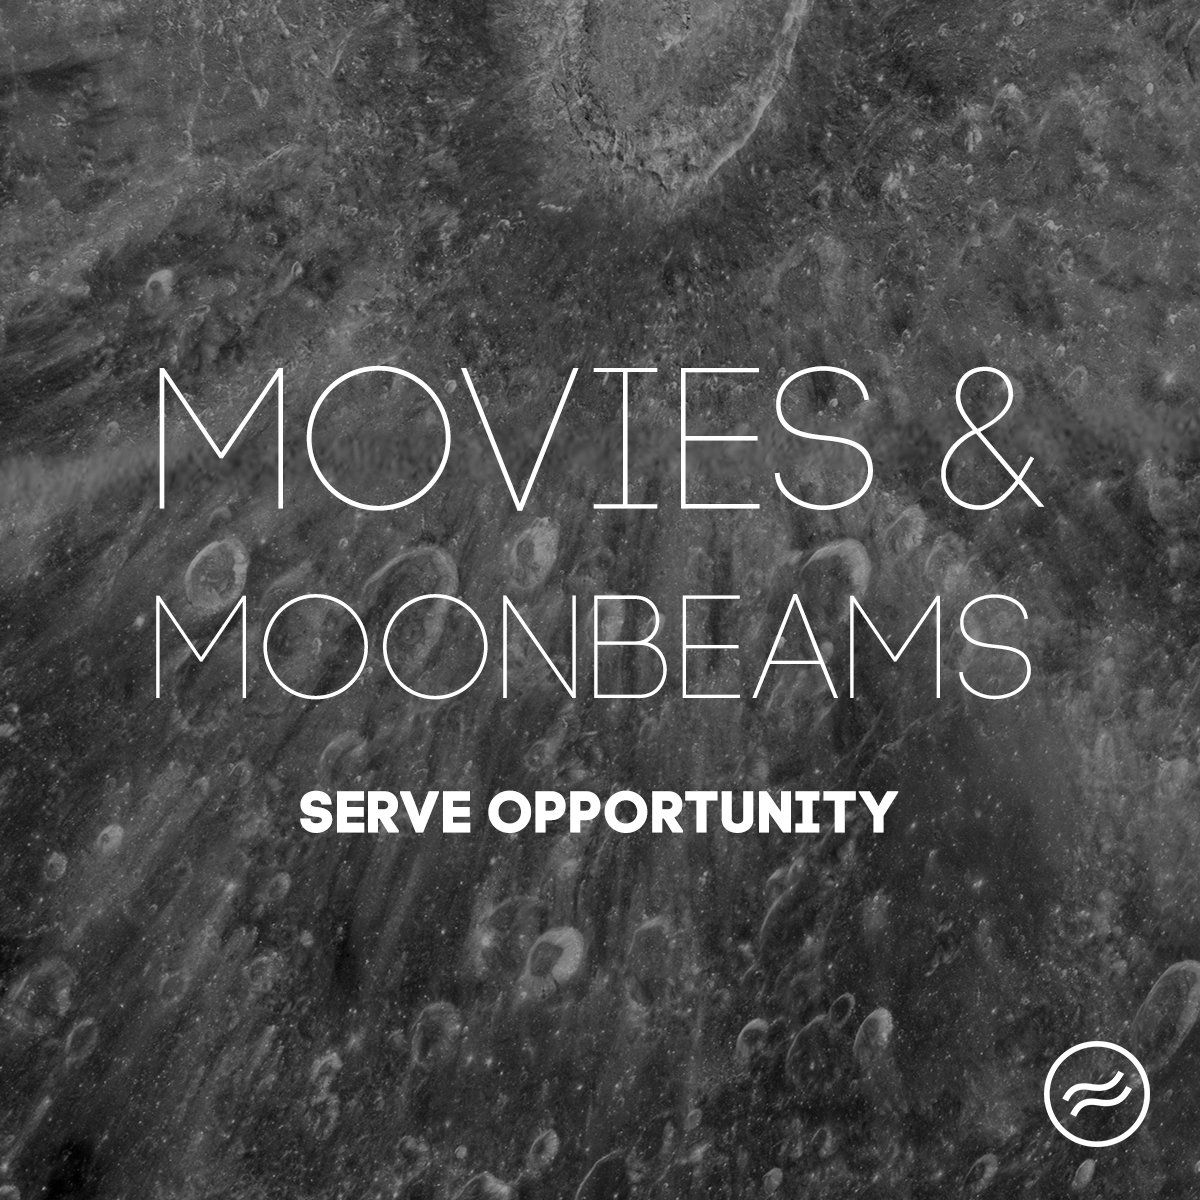 Movies moonbeams insta 2015